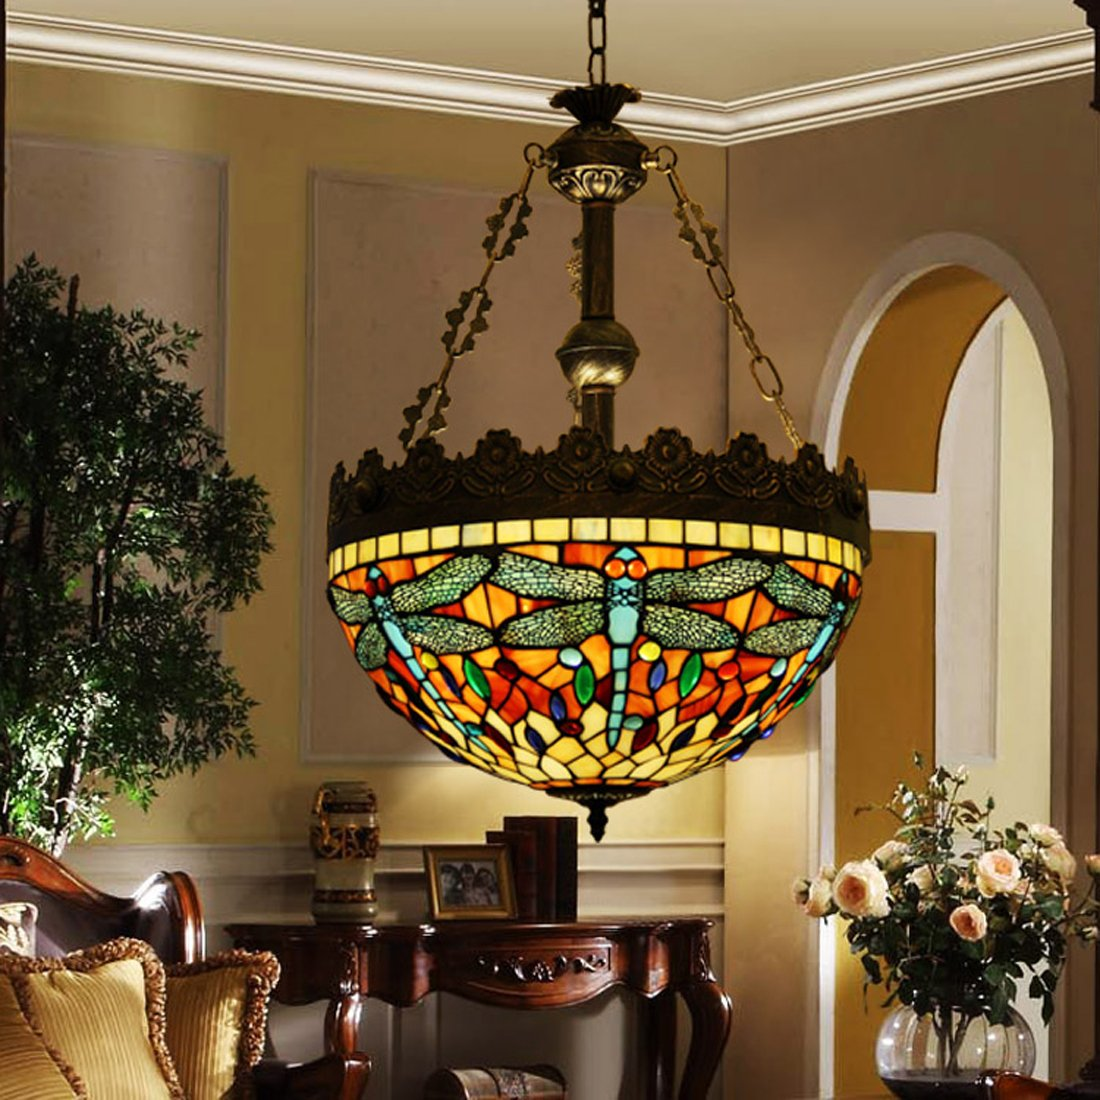 tiffany style pendant light fixture. Makenier Vintage Tiffany Style Stained Glass Dragonfly Inverted Ceiling Pendant Lamp Fixture, 16 Inches Lampshade - Amazon.com Light Fixture I